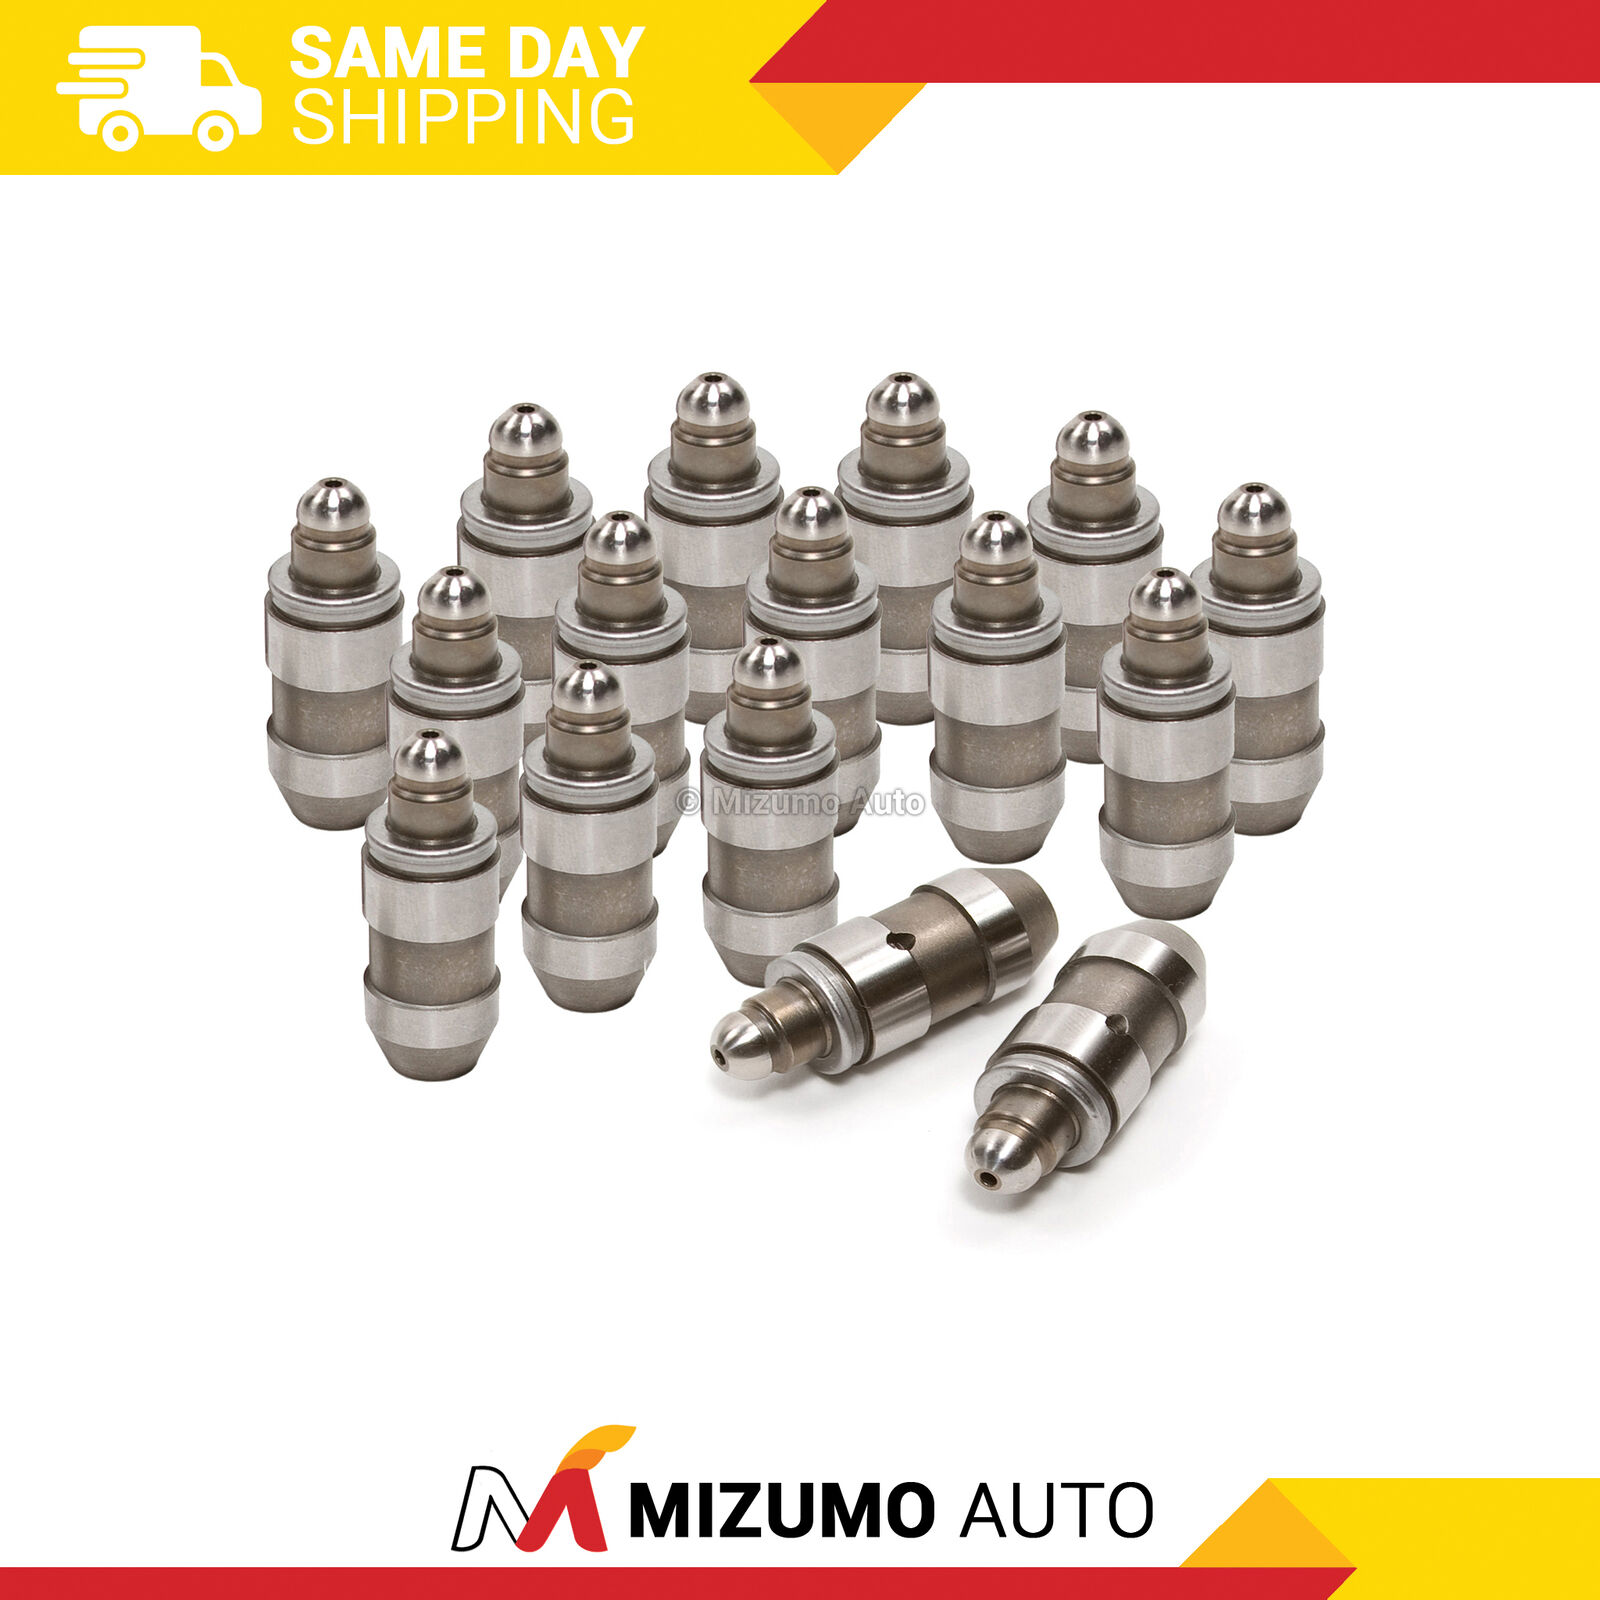 FreieFahrt 16X Hydraulic Valve Lifter for 1991-1996 1999-2002 for Infiniti G20 1991-1993 for Nissan NX 1995-1998 for Nissan 200SX 1995-1998 for Nissan 200SX Lash Adjusters LF3028